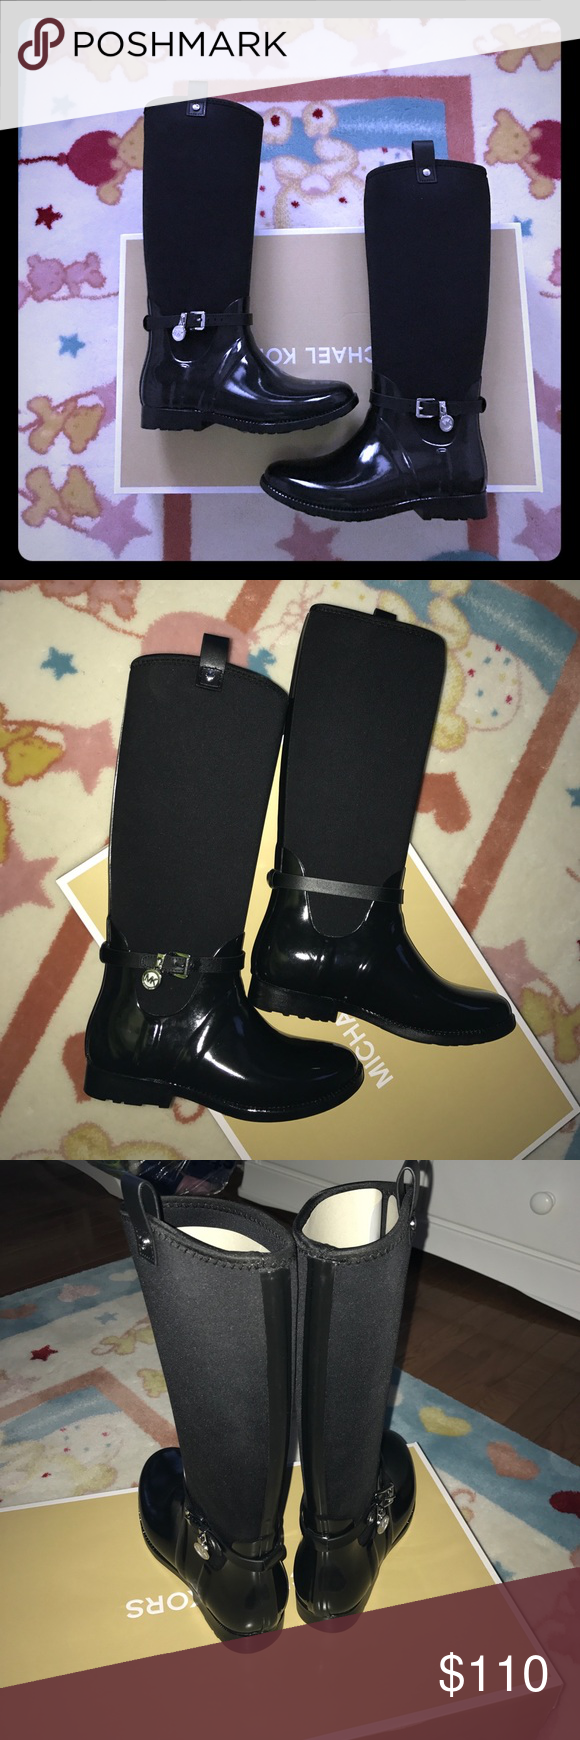 Michael Kors Charm Stretch Rainboots in Black 7 They're new with box in Black. Size 7 Michael Kors Shoes Winter & Rain Boots